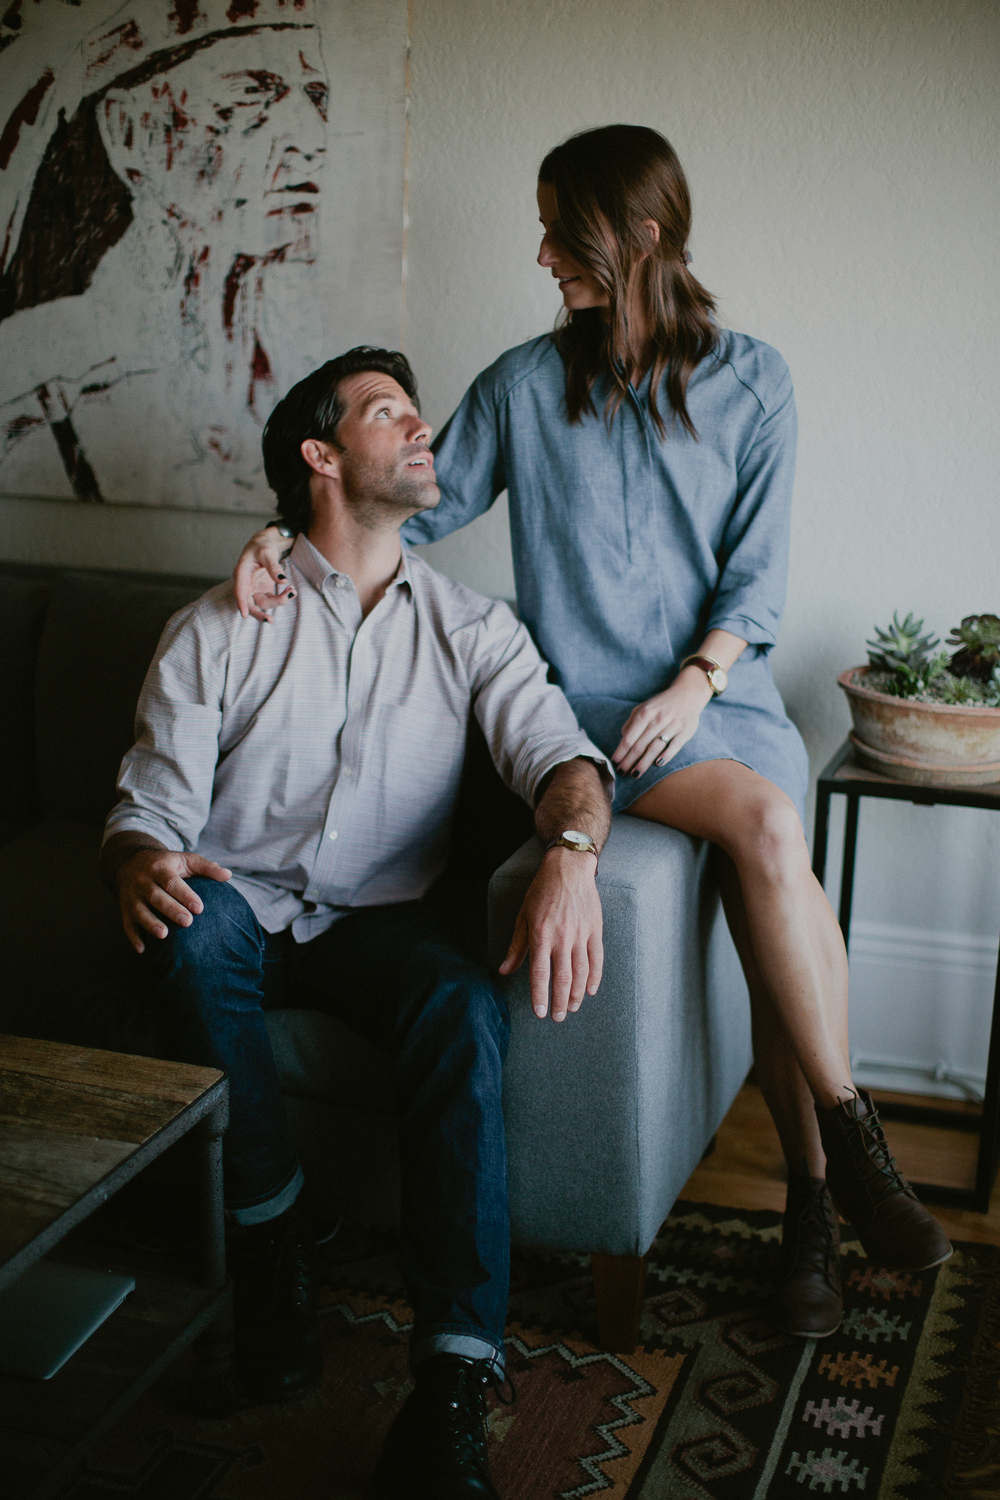 gretchen_gause_san_francisco_documentary_engagement_session_photo_